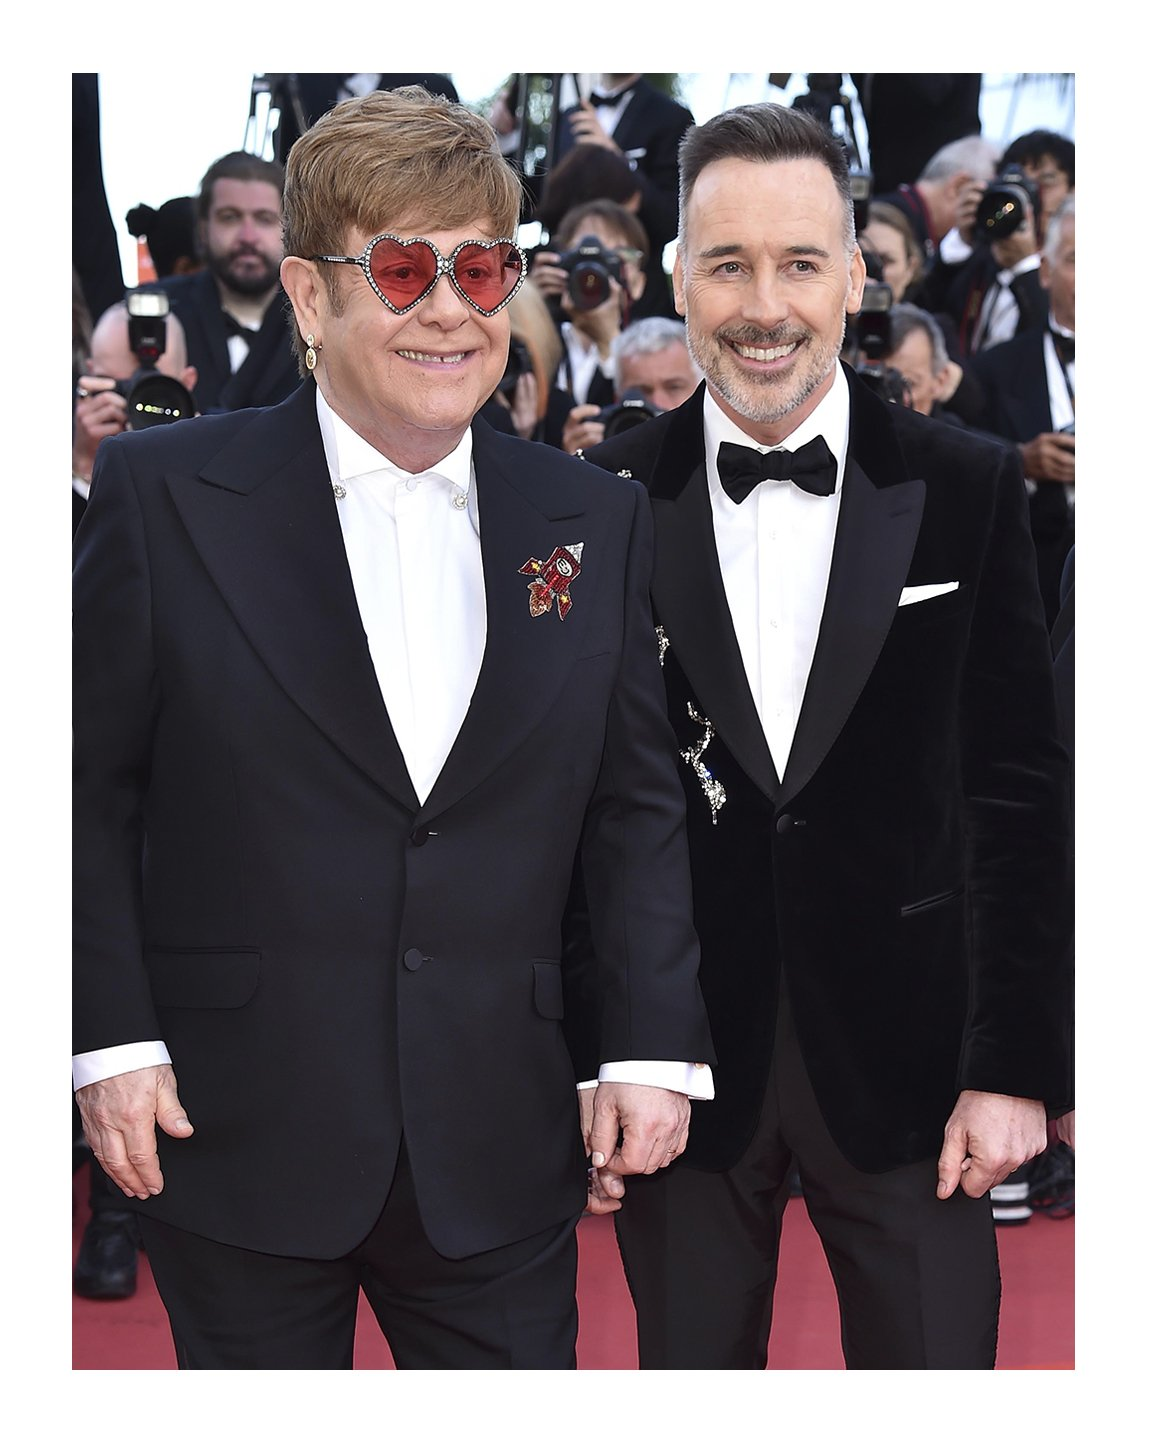 To the @rocketmanmovie's premiere at @festivaldecannes, Sir @eltonofficial and #DavidFurnish. Interpreted by @TaronEgerton, the musical fantasy about the incredible human story of #EltonJohn's breakthrough years features looks by #AlessandroMichele. #Cannes2019  #NeverOrdinary https://t.co/pquyKaPWRf